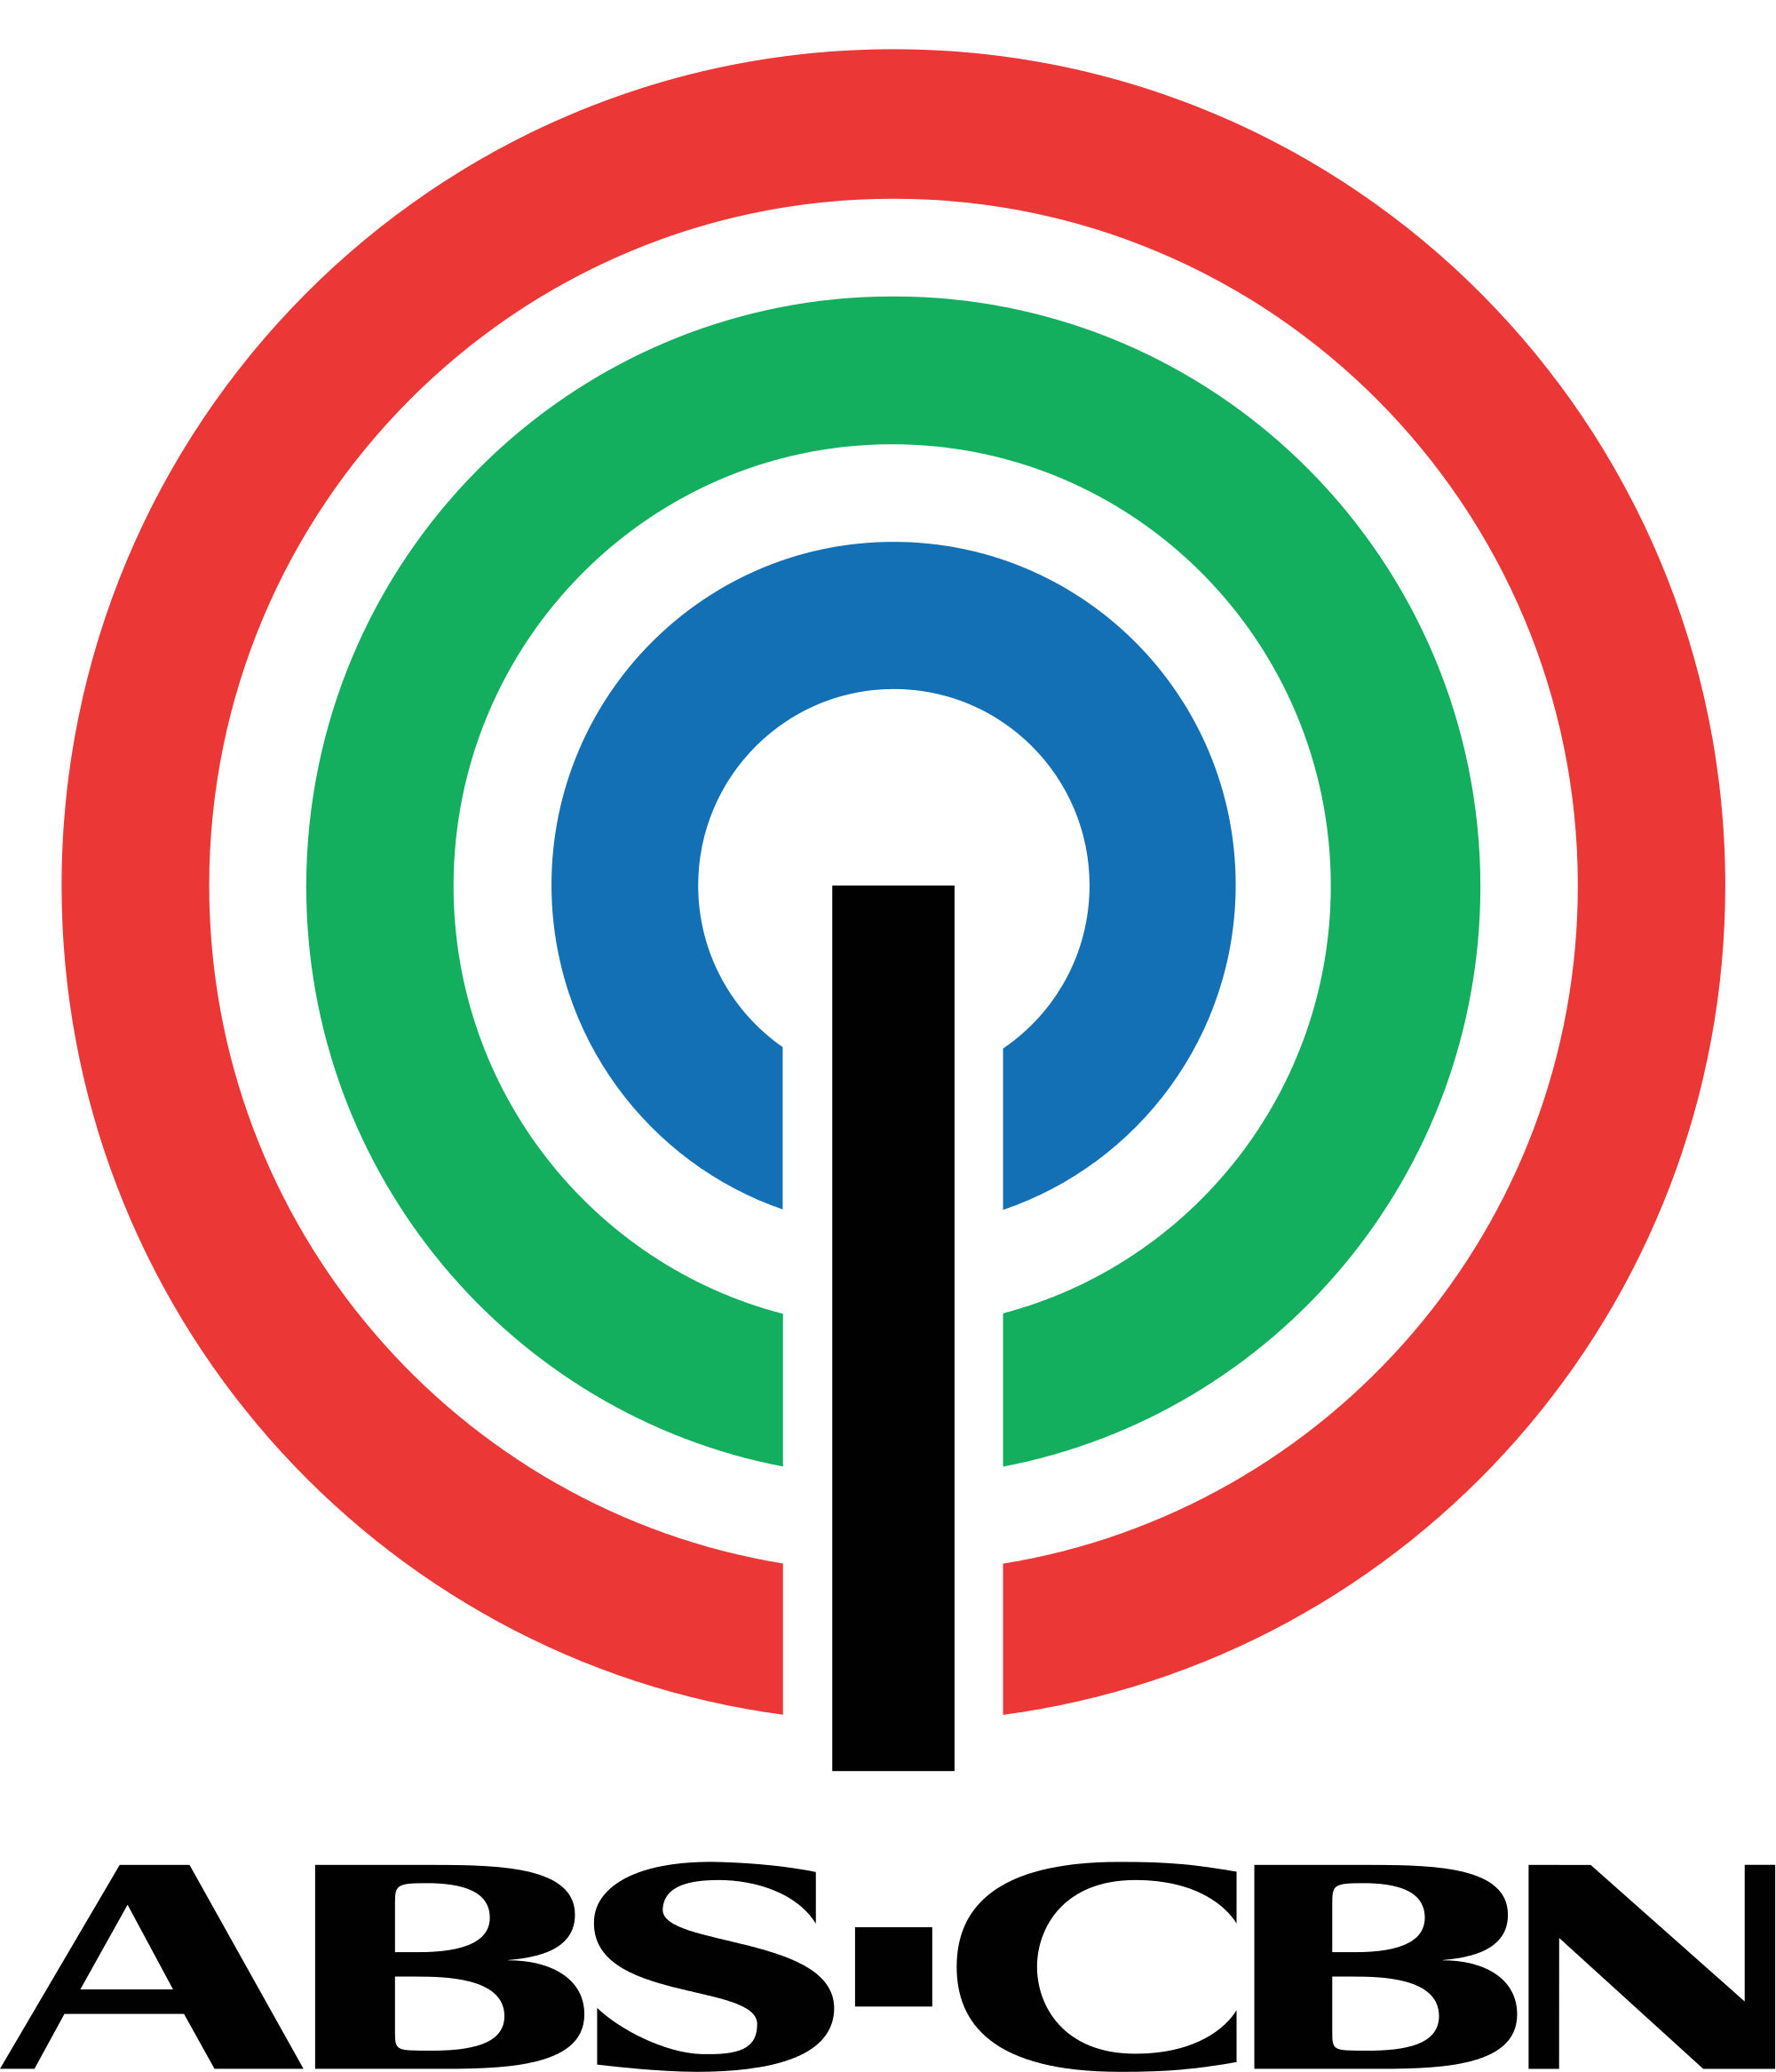 List of programs broadcast by Philippine Broadcasting Service